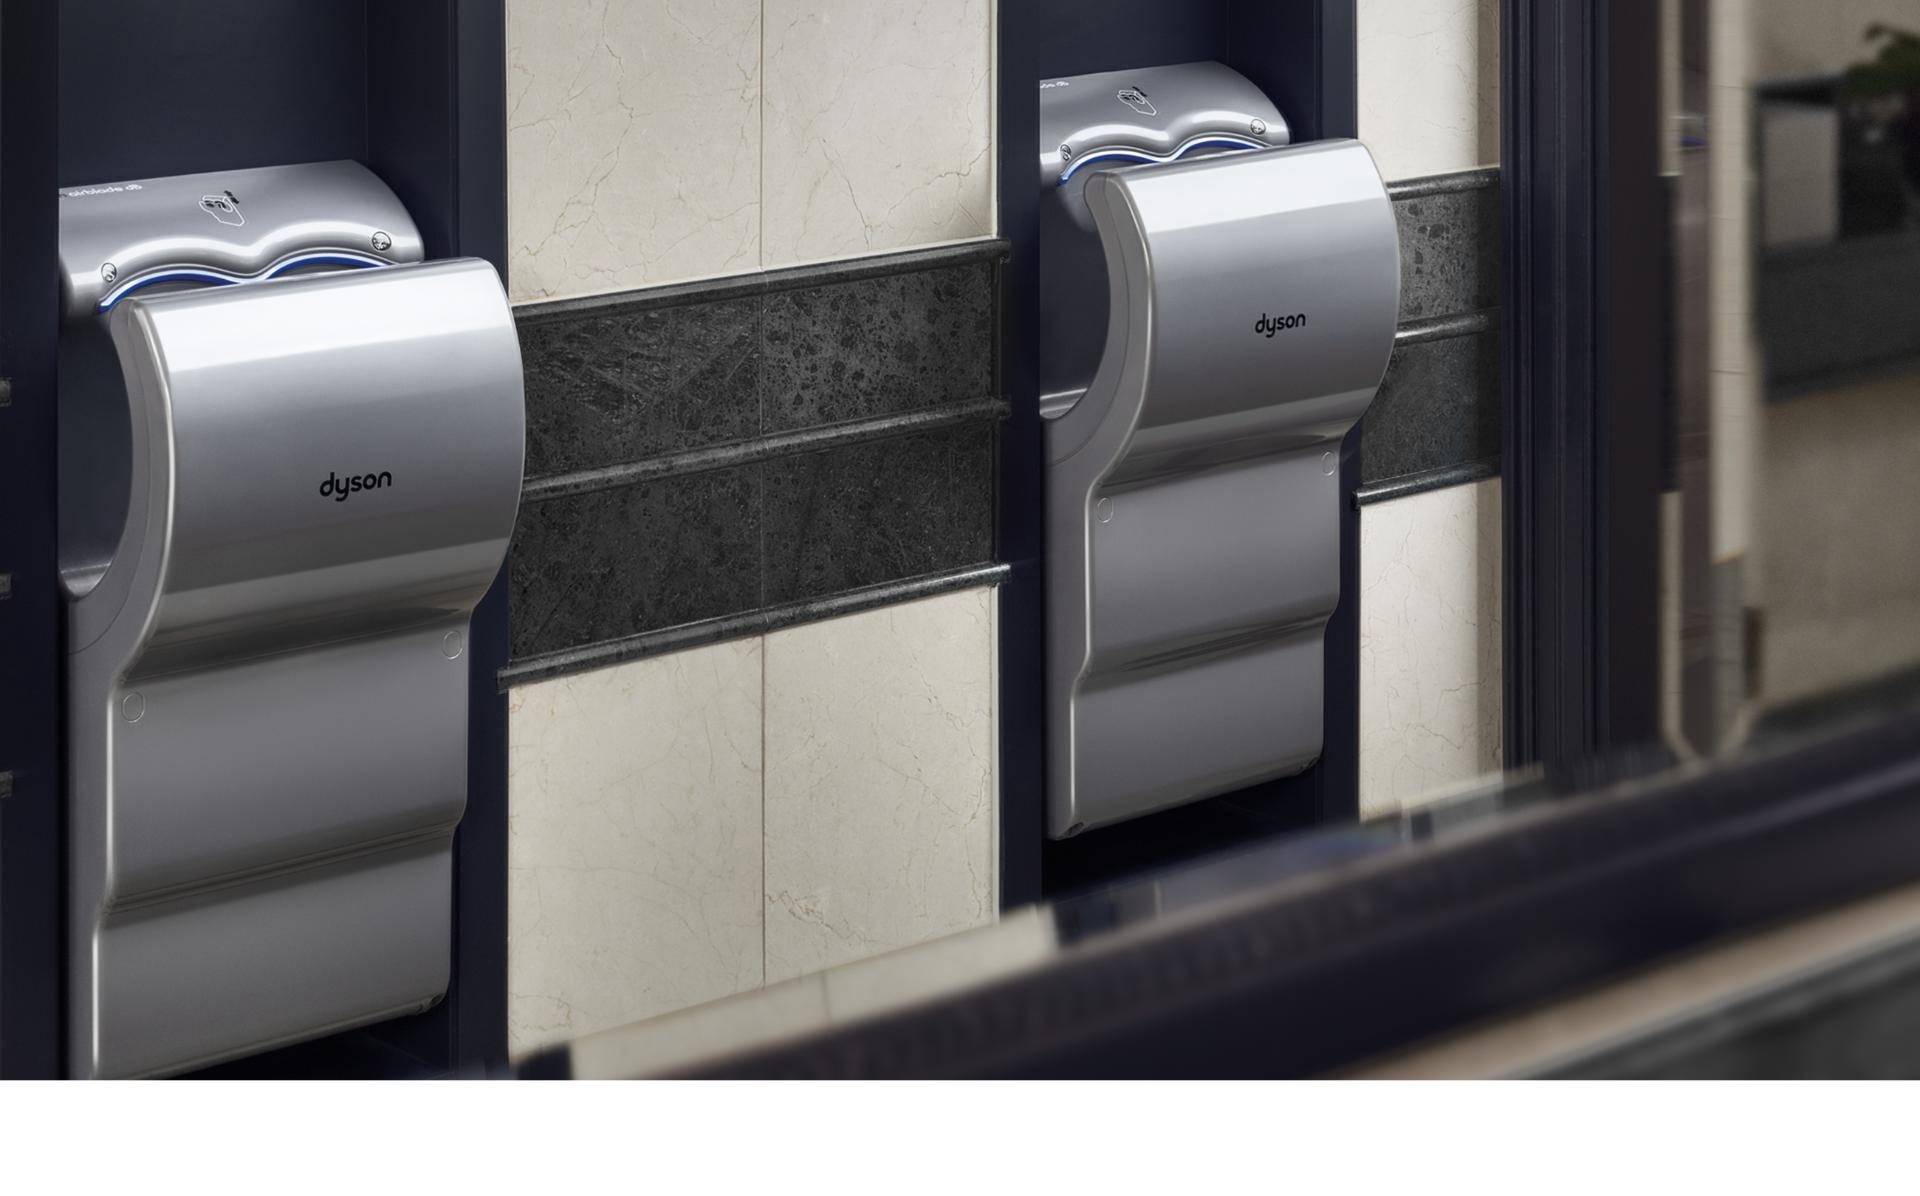 Two Dyson Airblade dB hand dryers in hotel bathroom